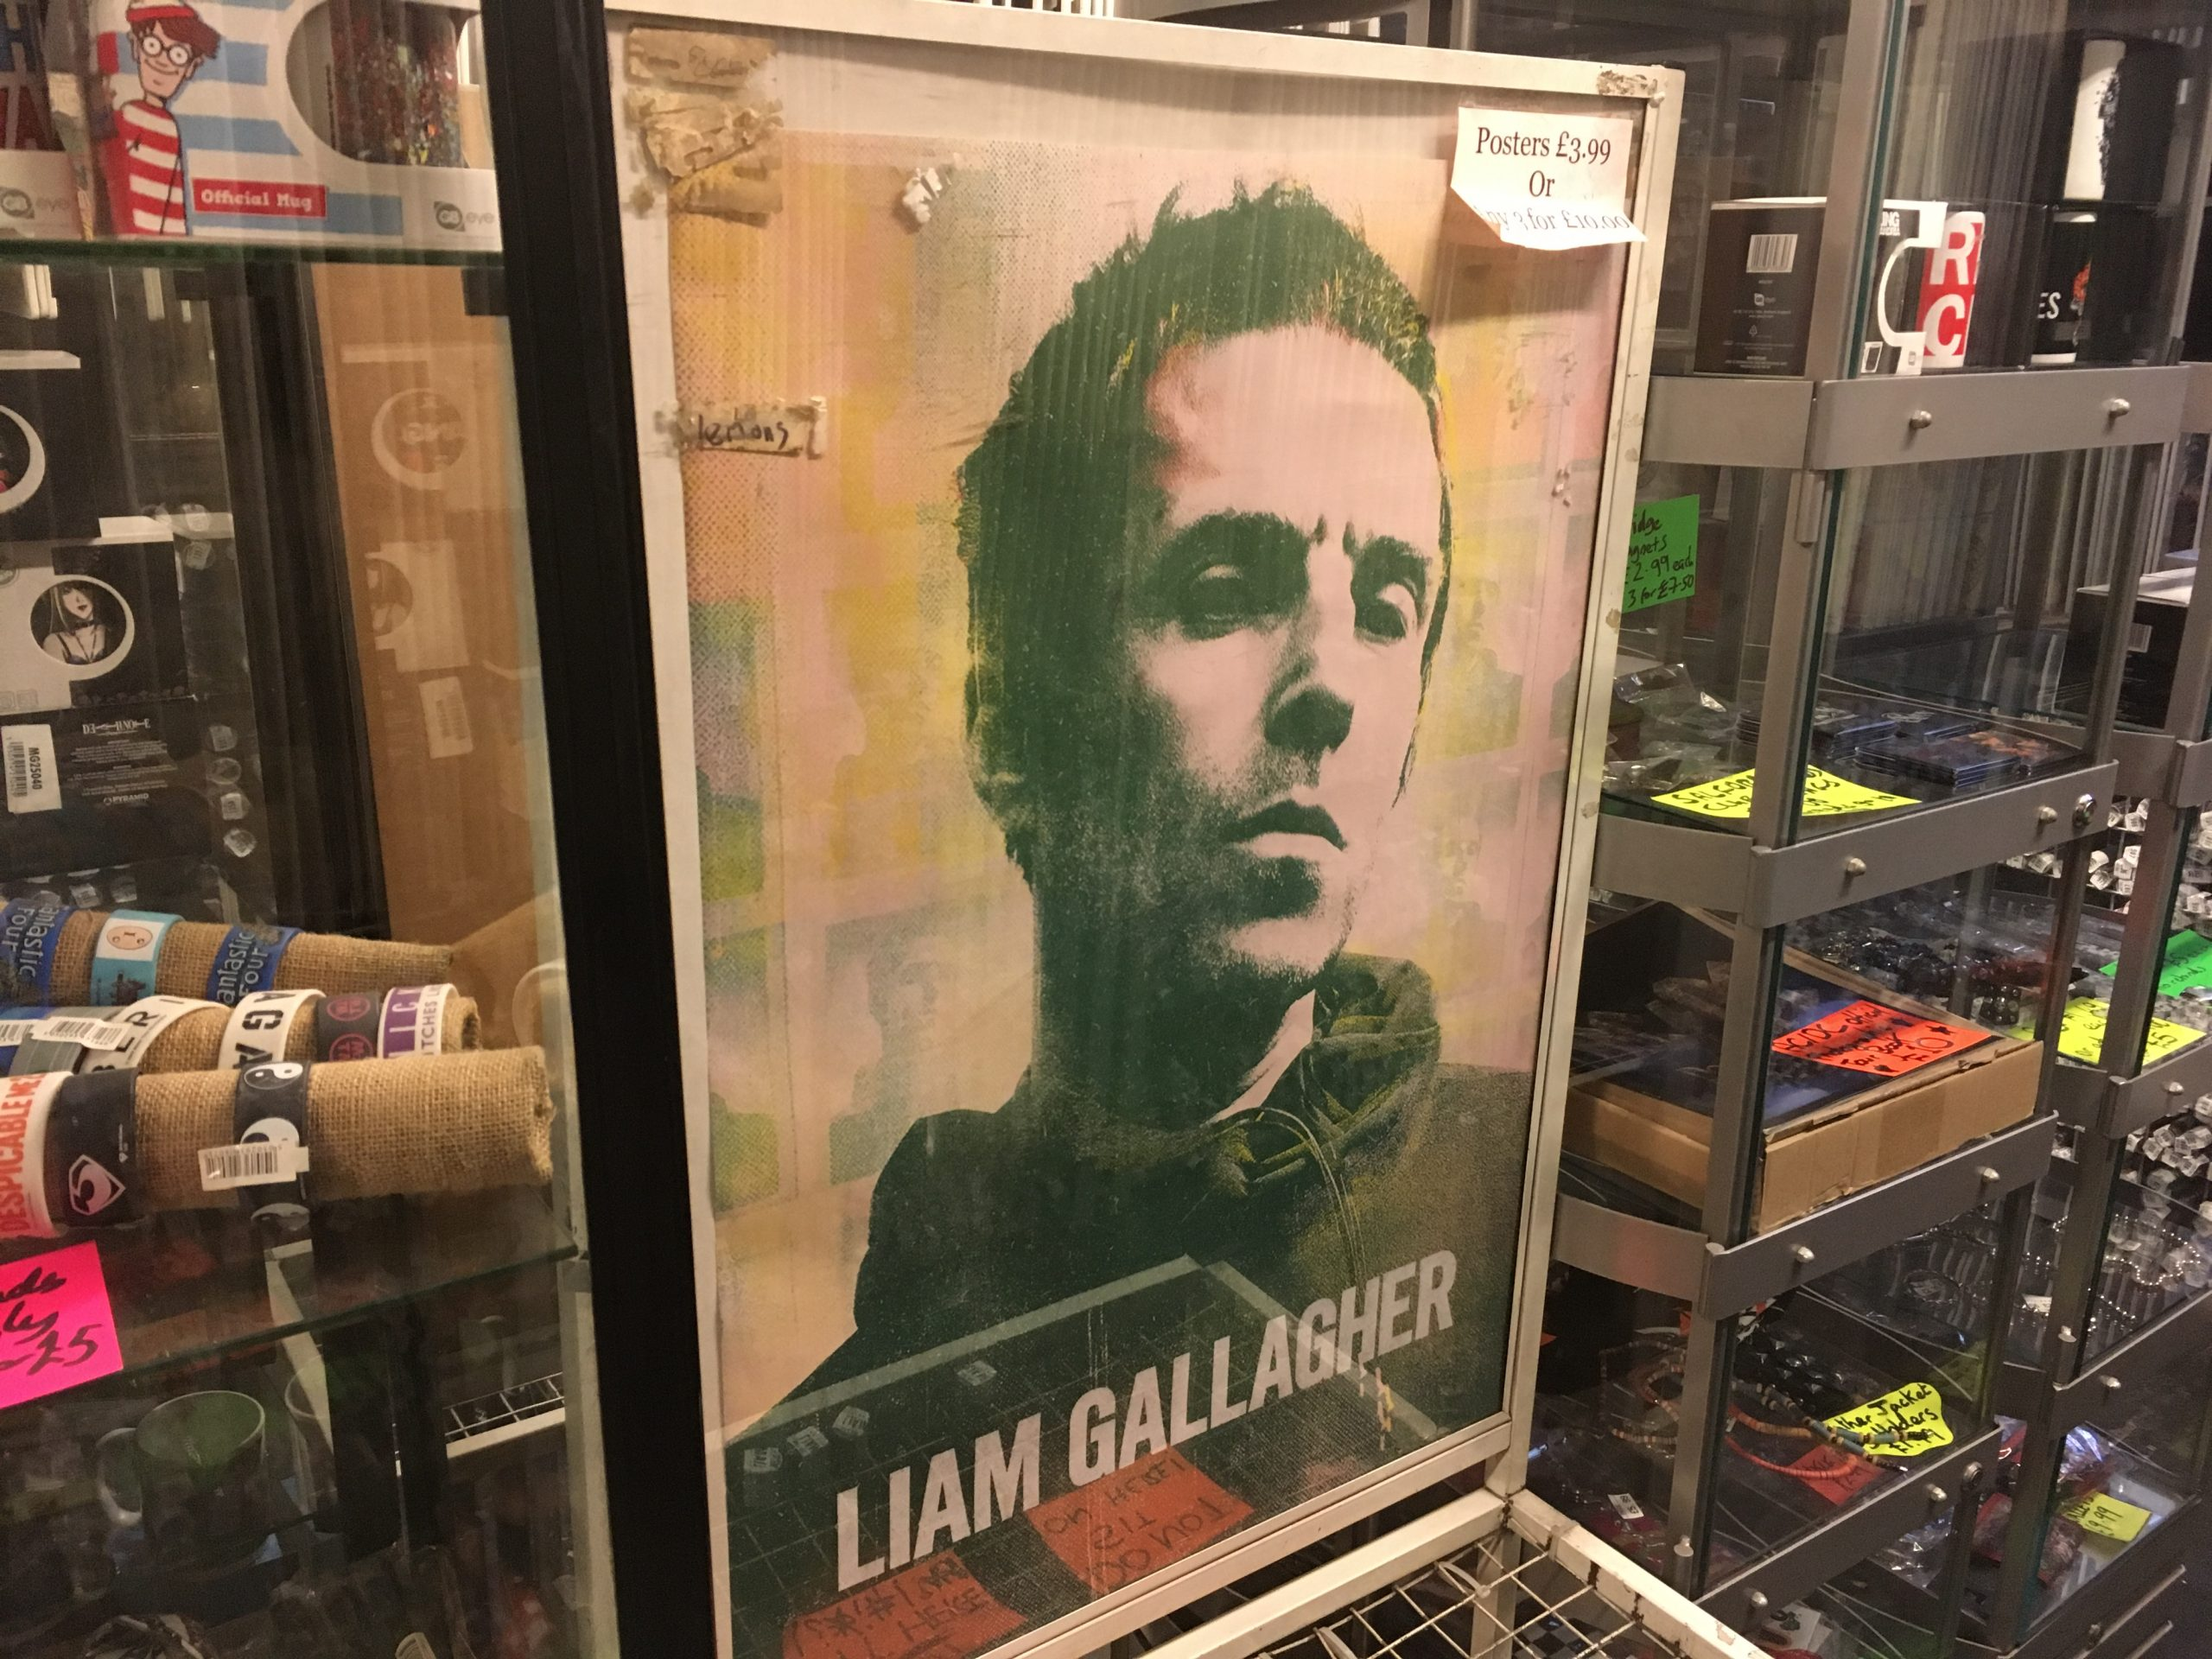 Poster of Liam Gallagher